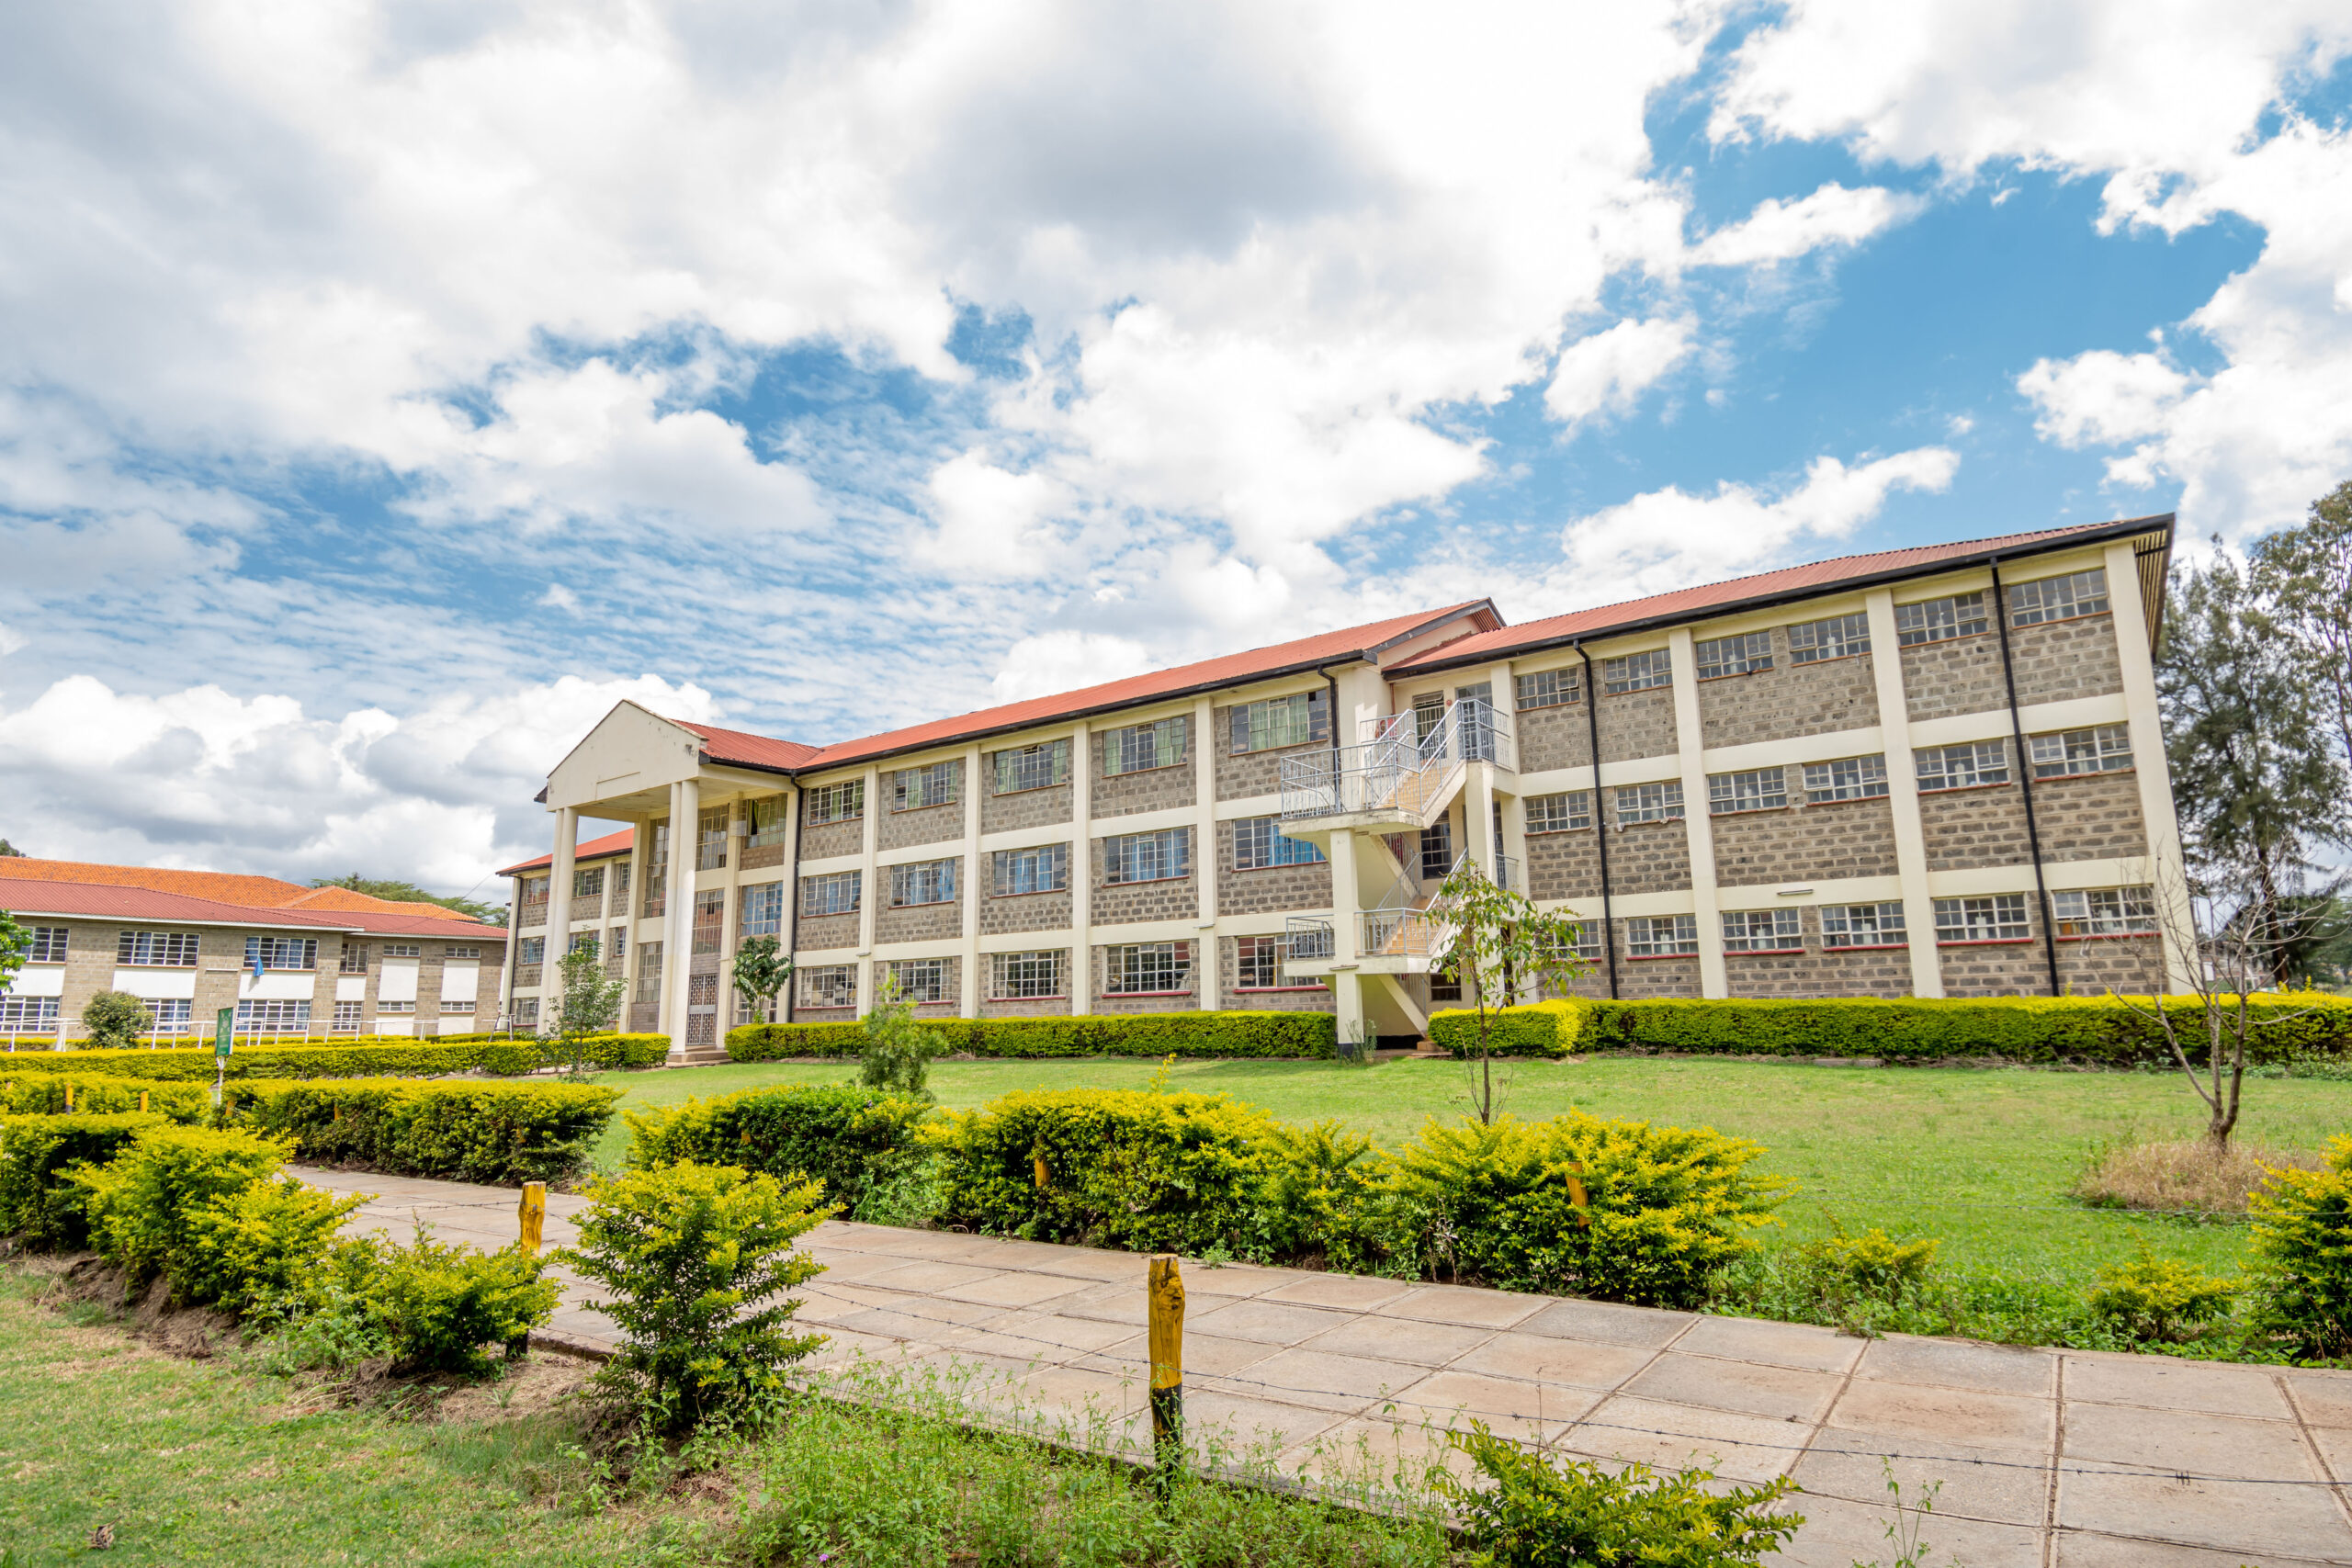 Sunshine Secondary School WhiteHouse